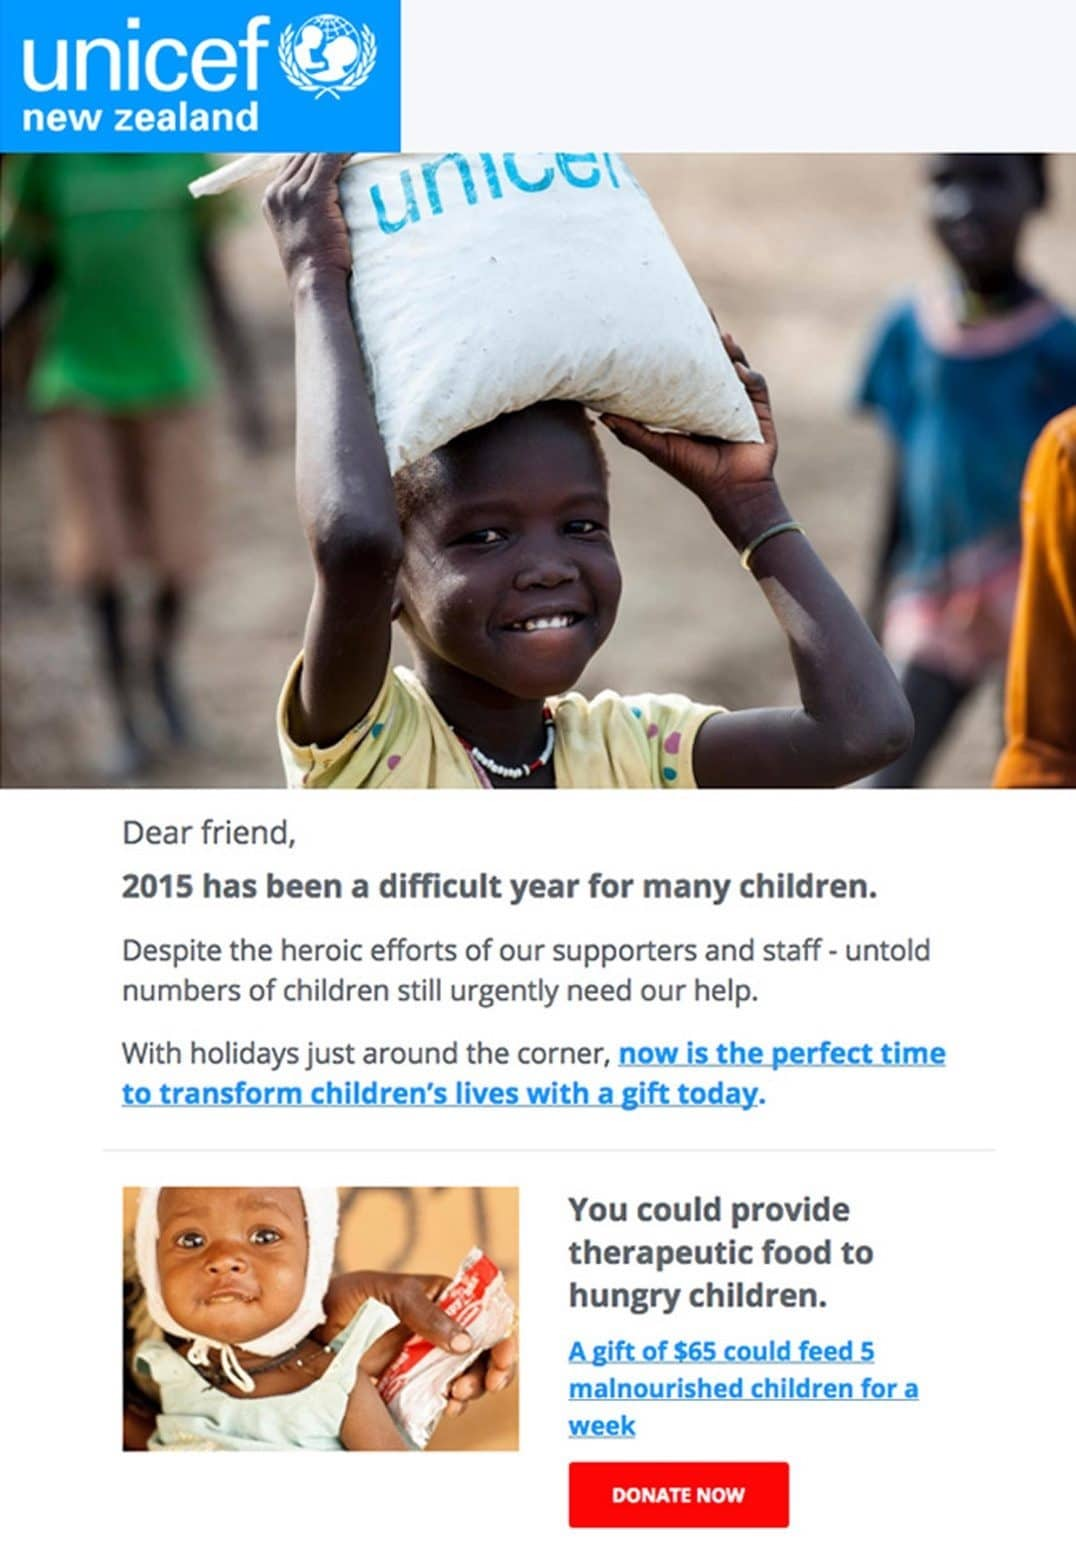 UNICEF New Zealand pairs excellent copywriting with impactful imagery to get readers to donate